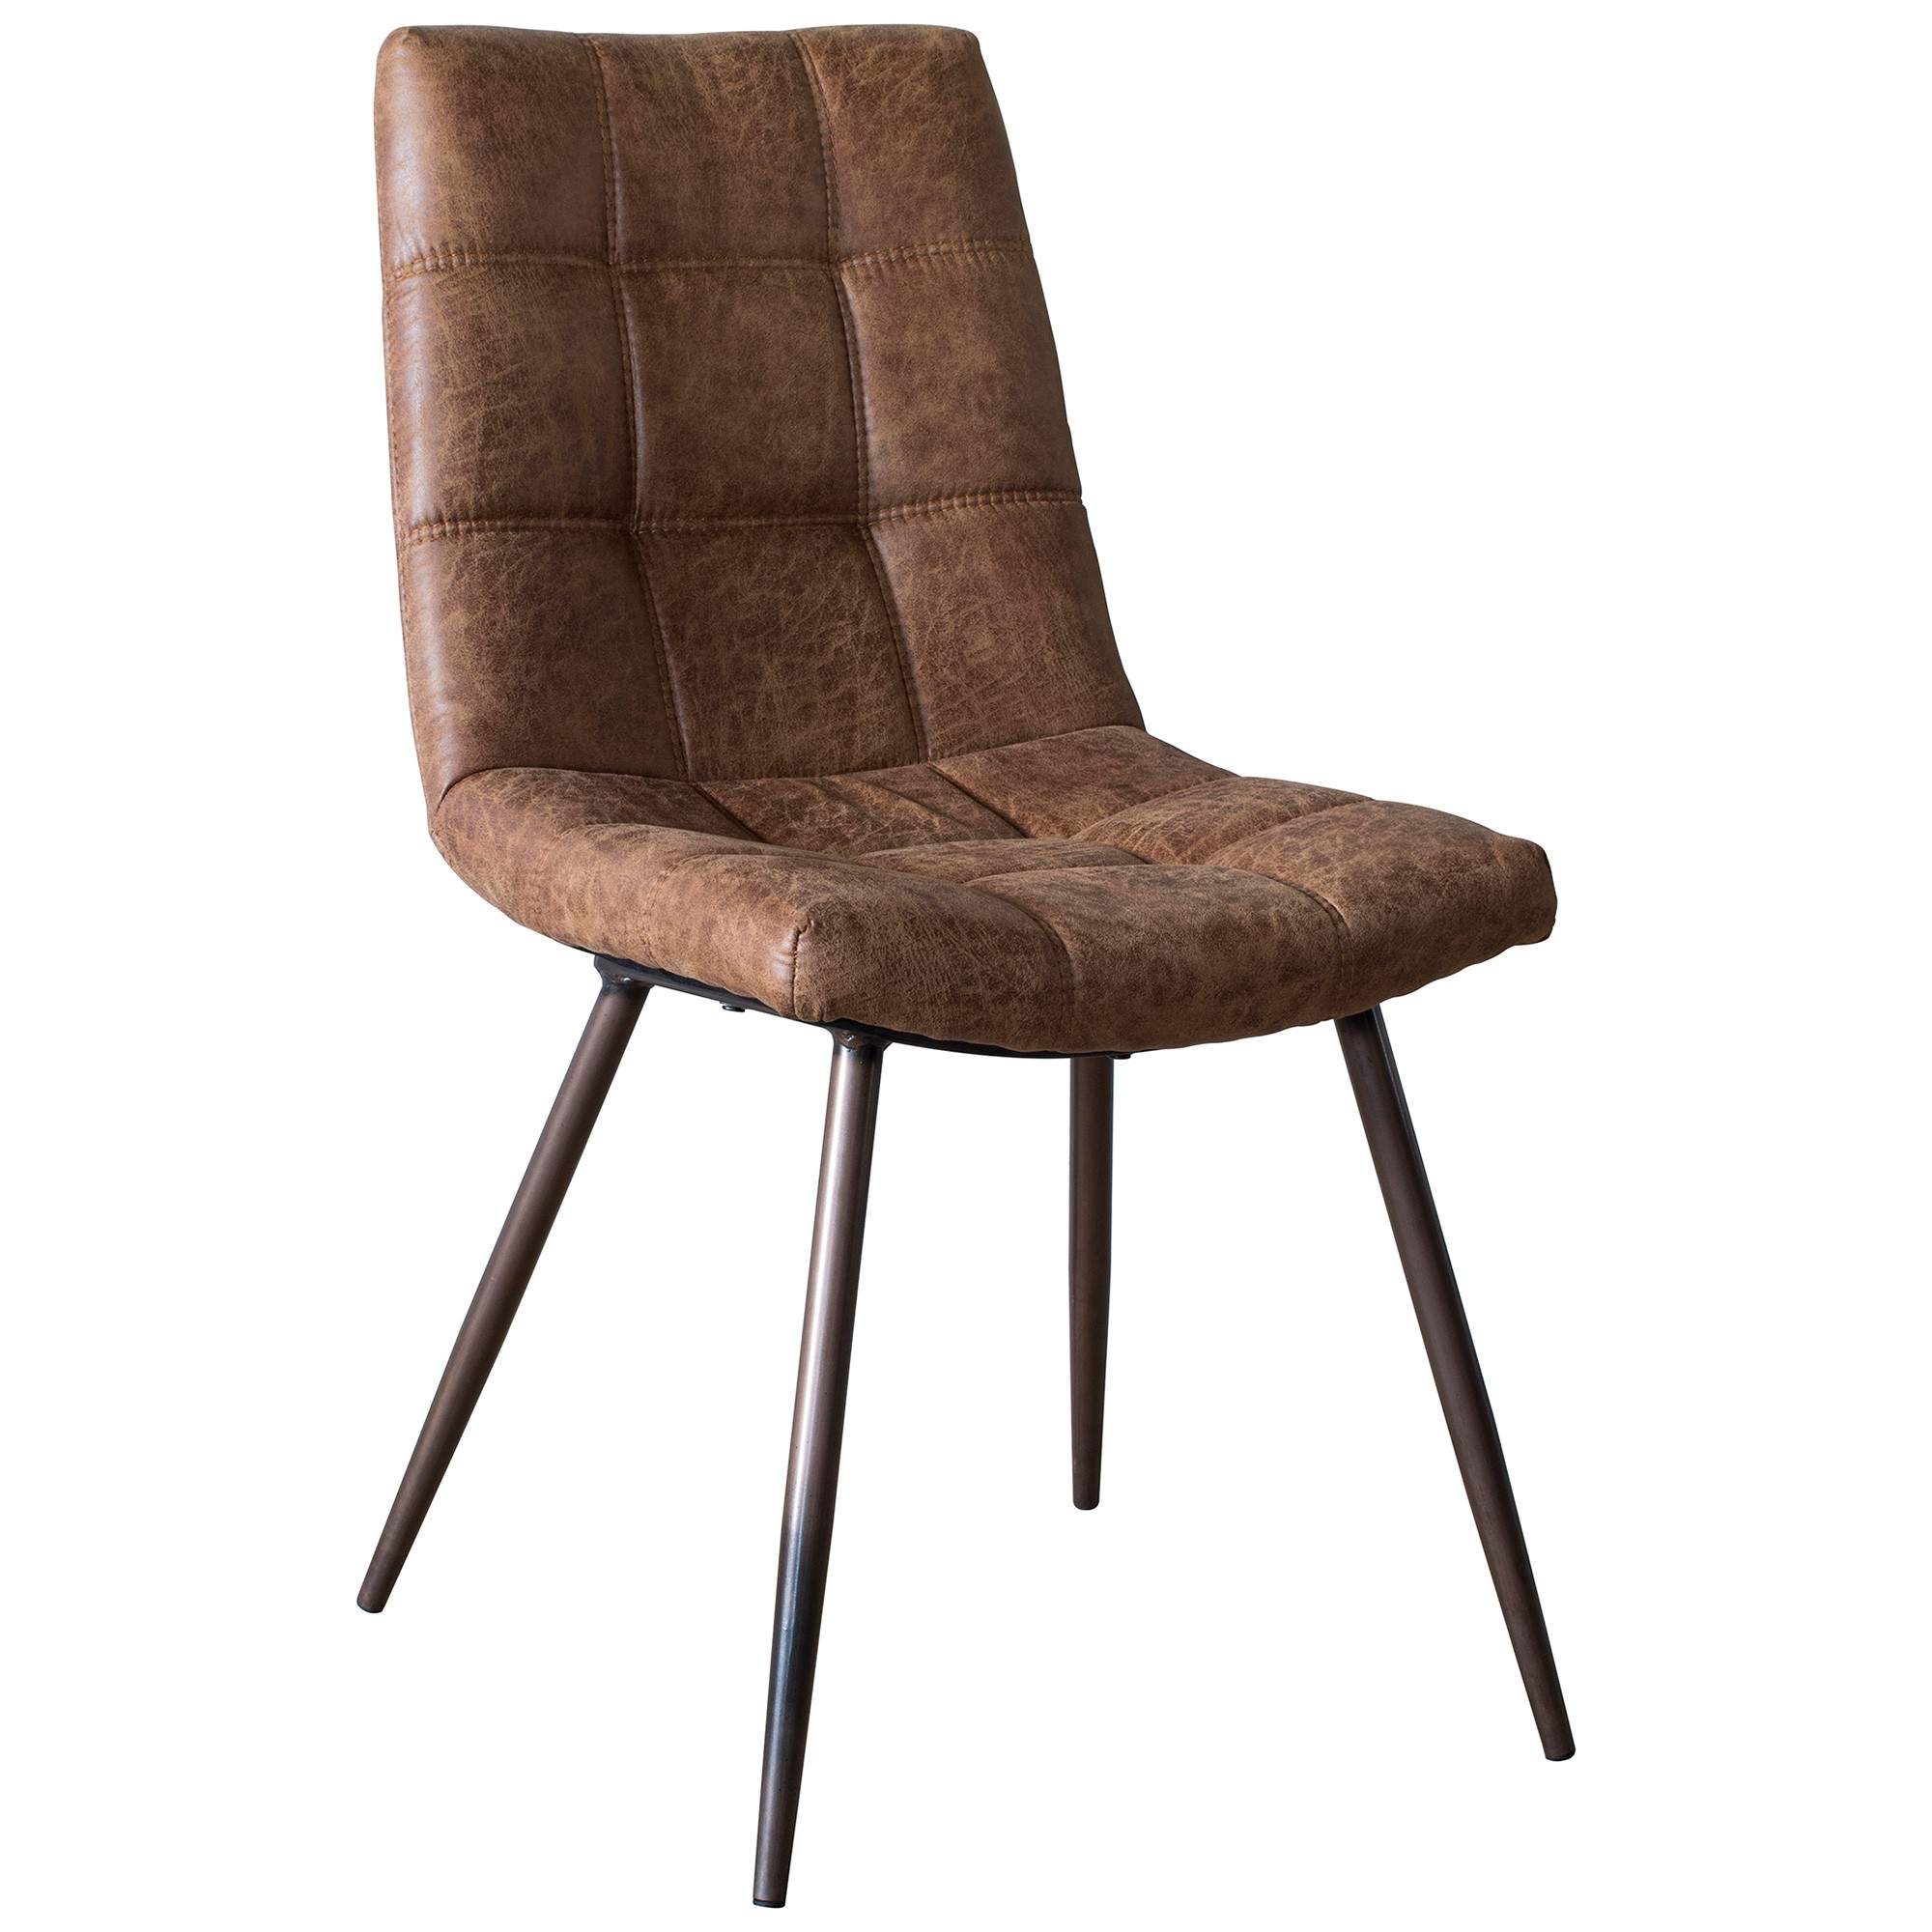 Dundell Faux Leather Dining Chair, Set of 2, Brown